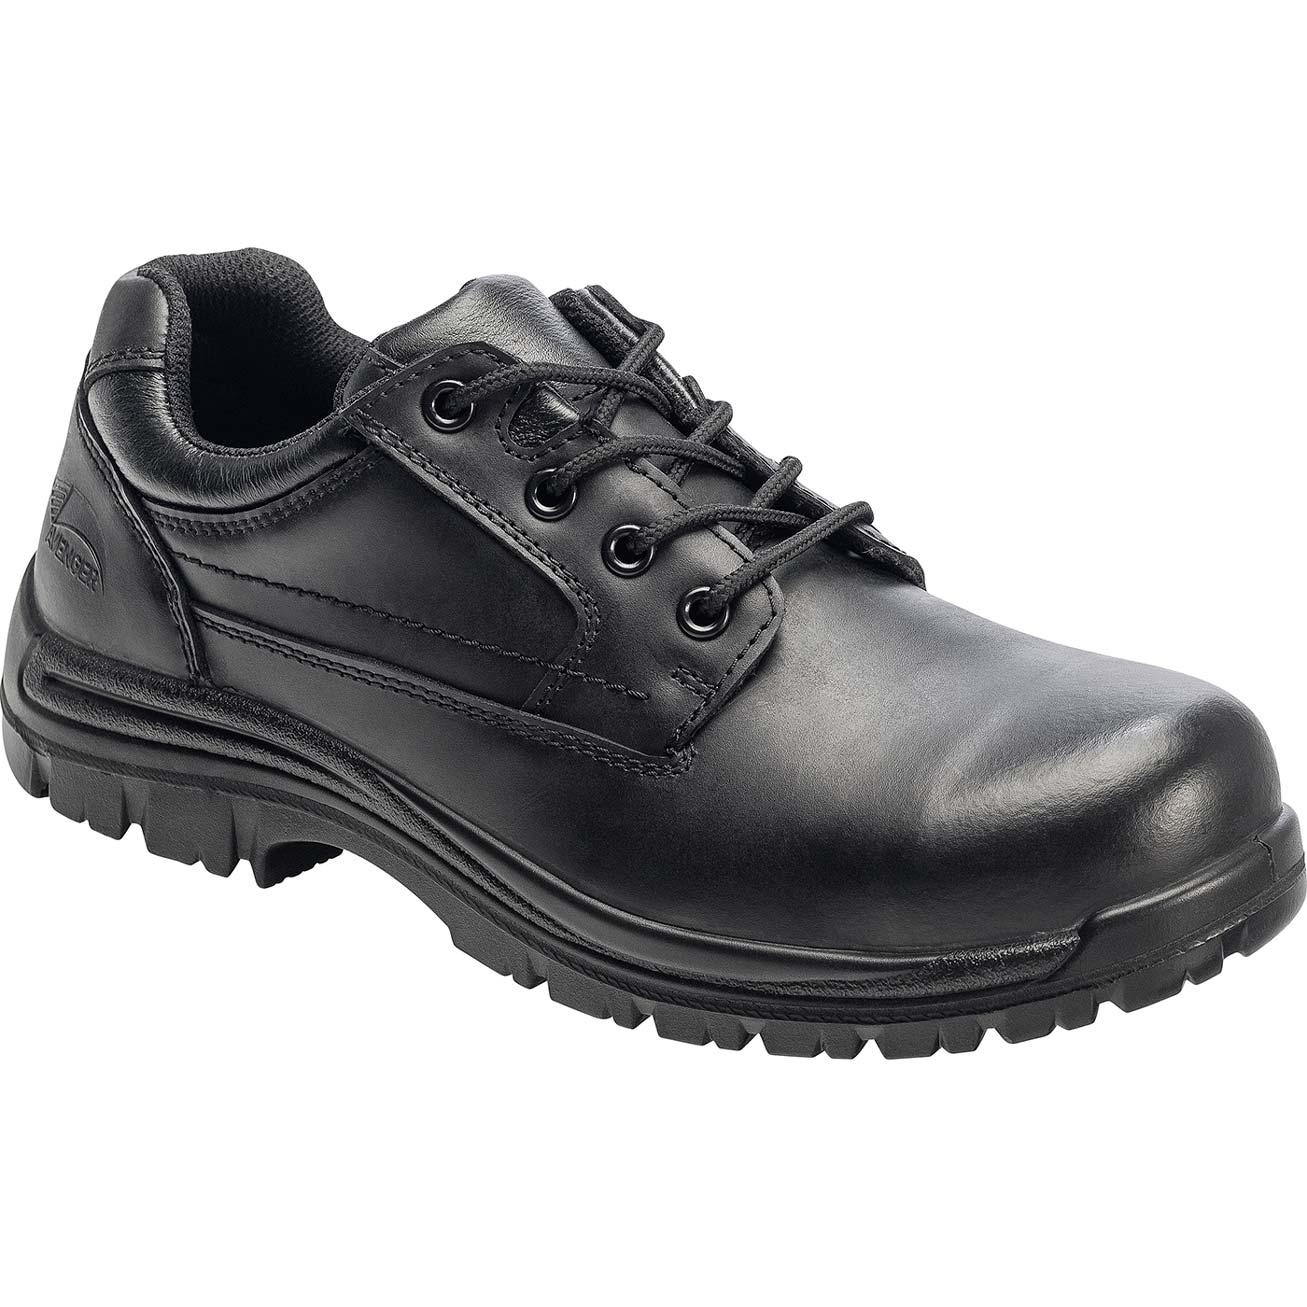 Avenger Composite Toe Work Oxford A7117